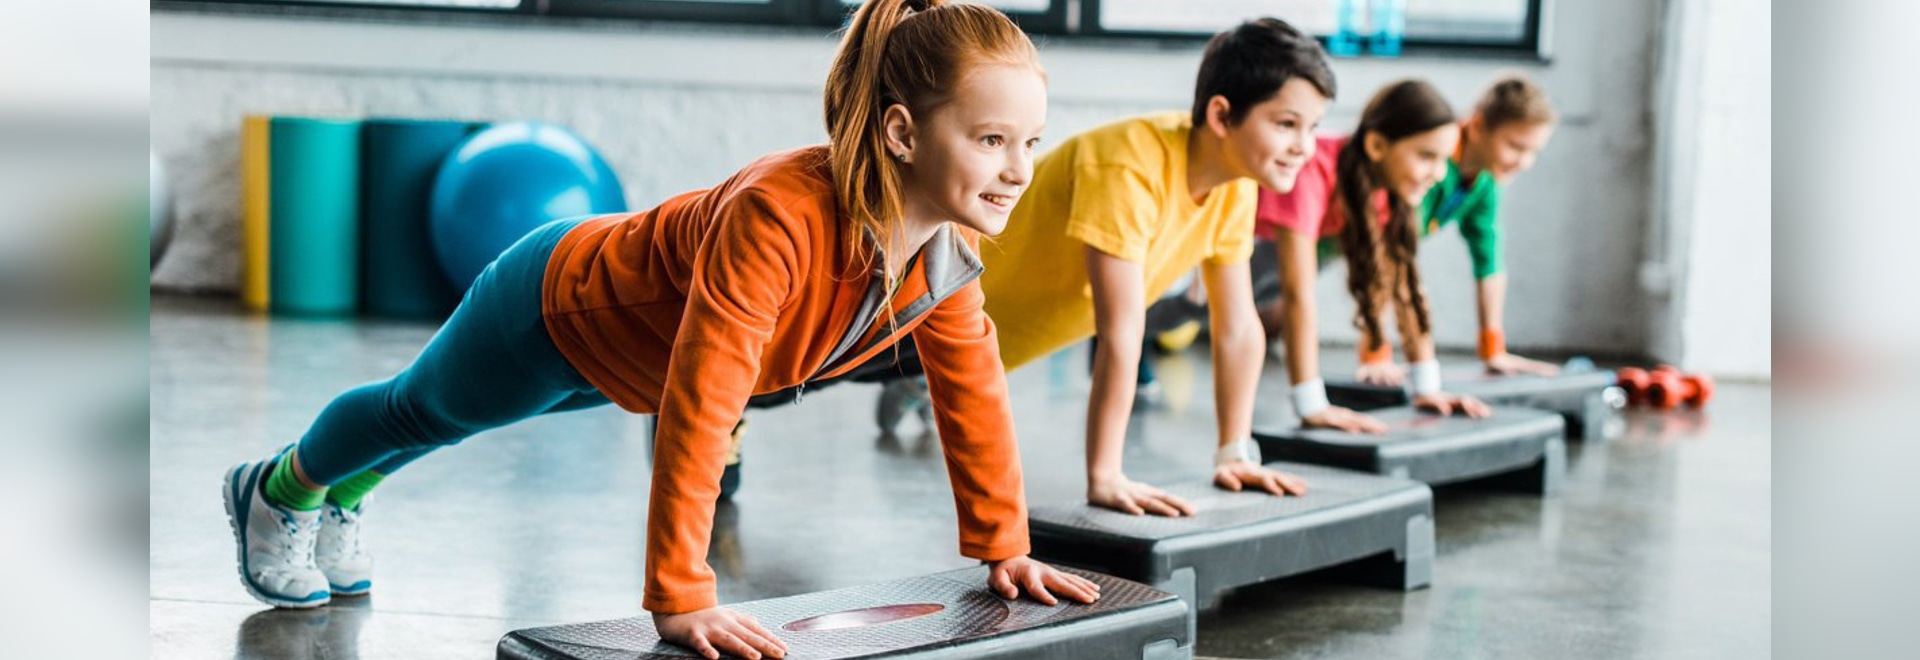 Is exercising from a young age good or bad for kids?